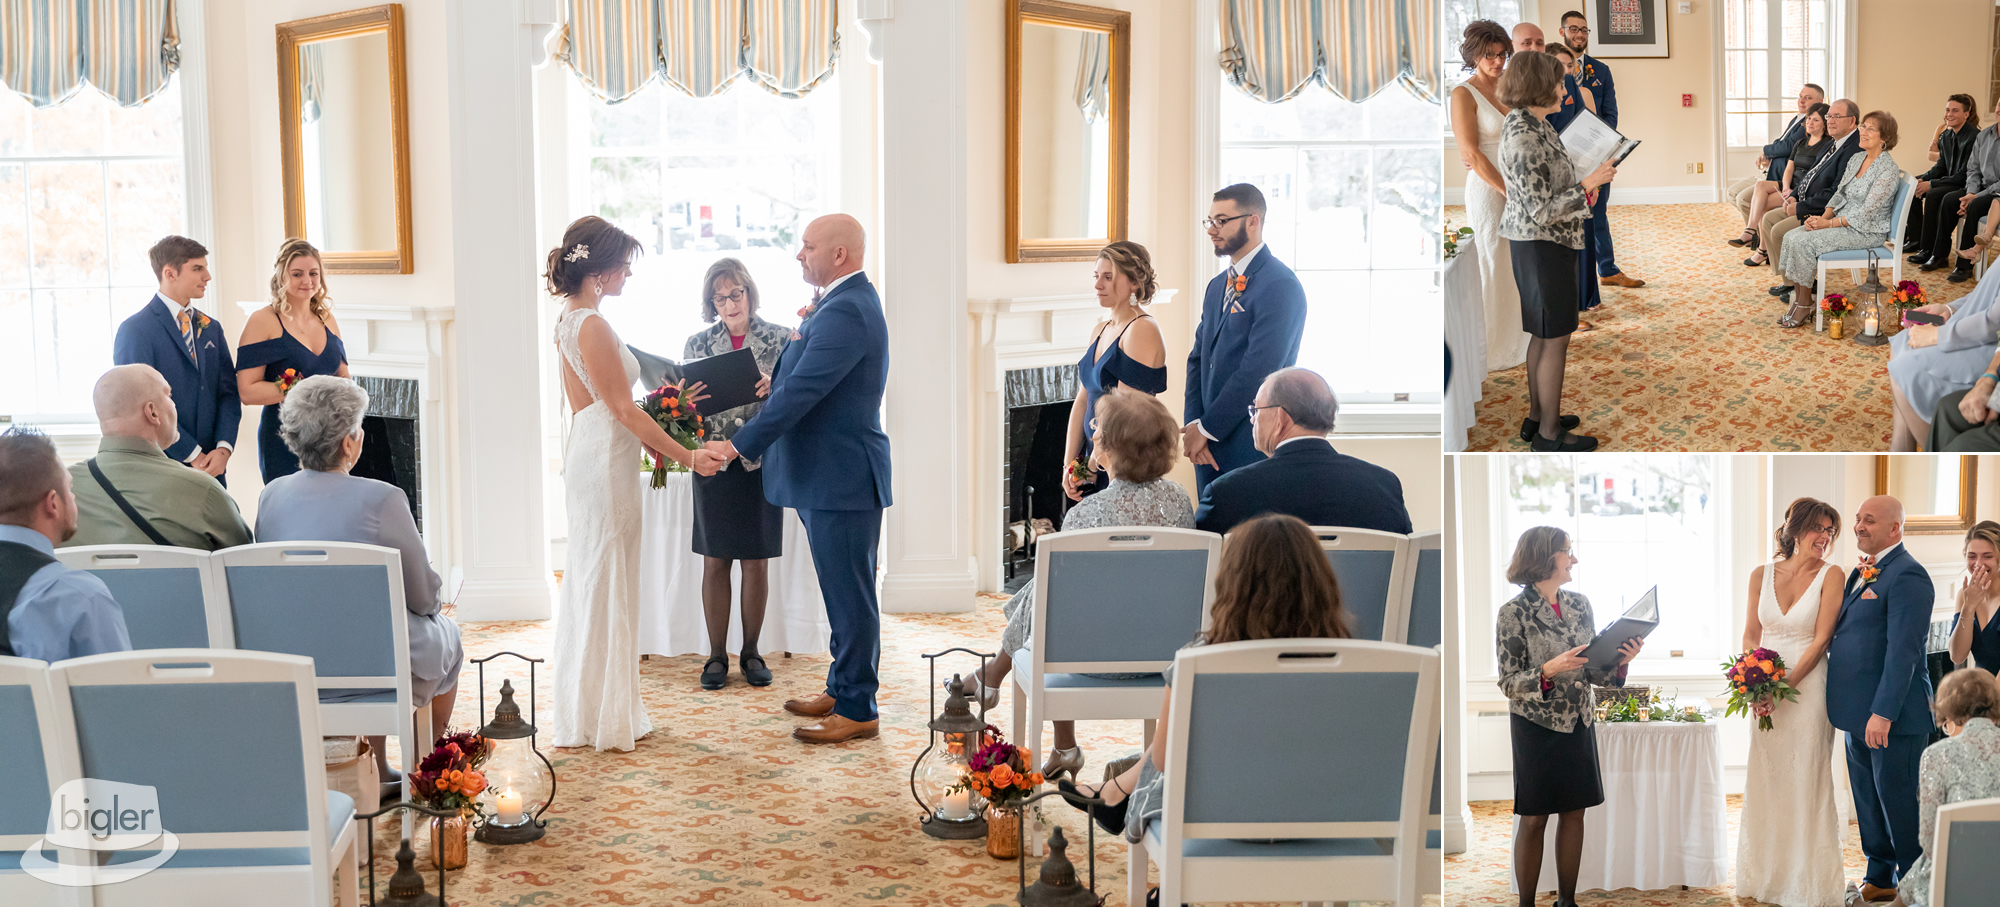 20181123_-_14_-_Melissa_and_Richard_Otesaga_Wedding_Photos